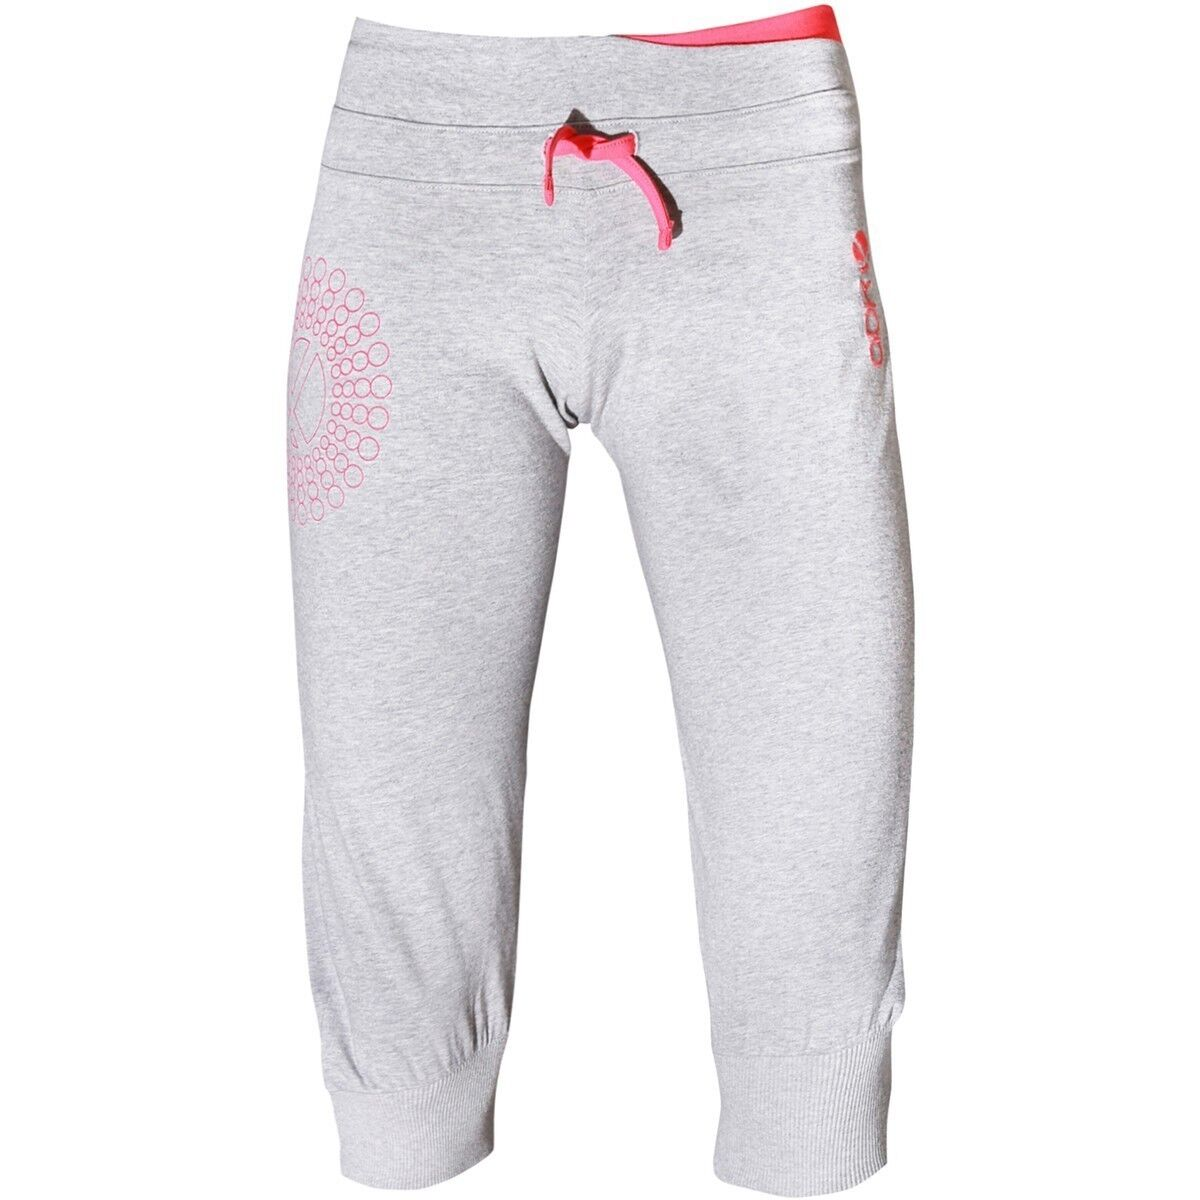 ABK Stretch 3 4 V2 Pant Women's, Grey,  Elastic Women's Pants  check out the cheapest